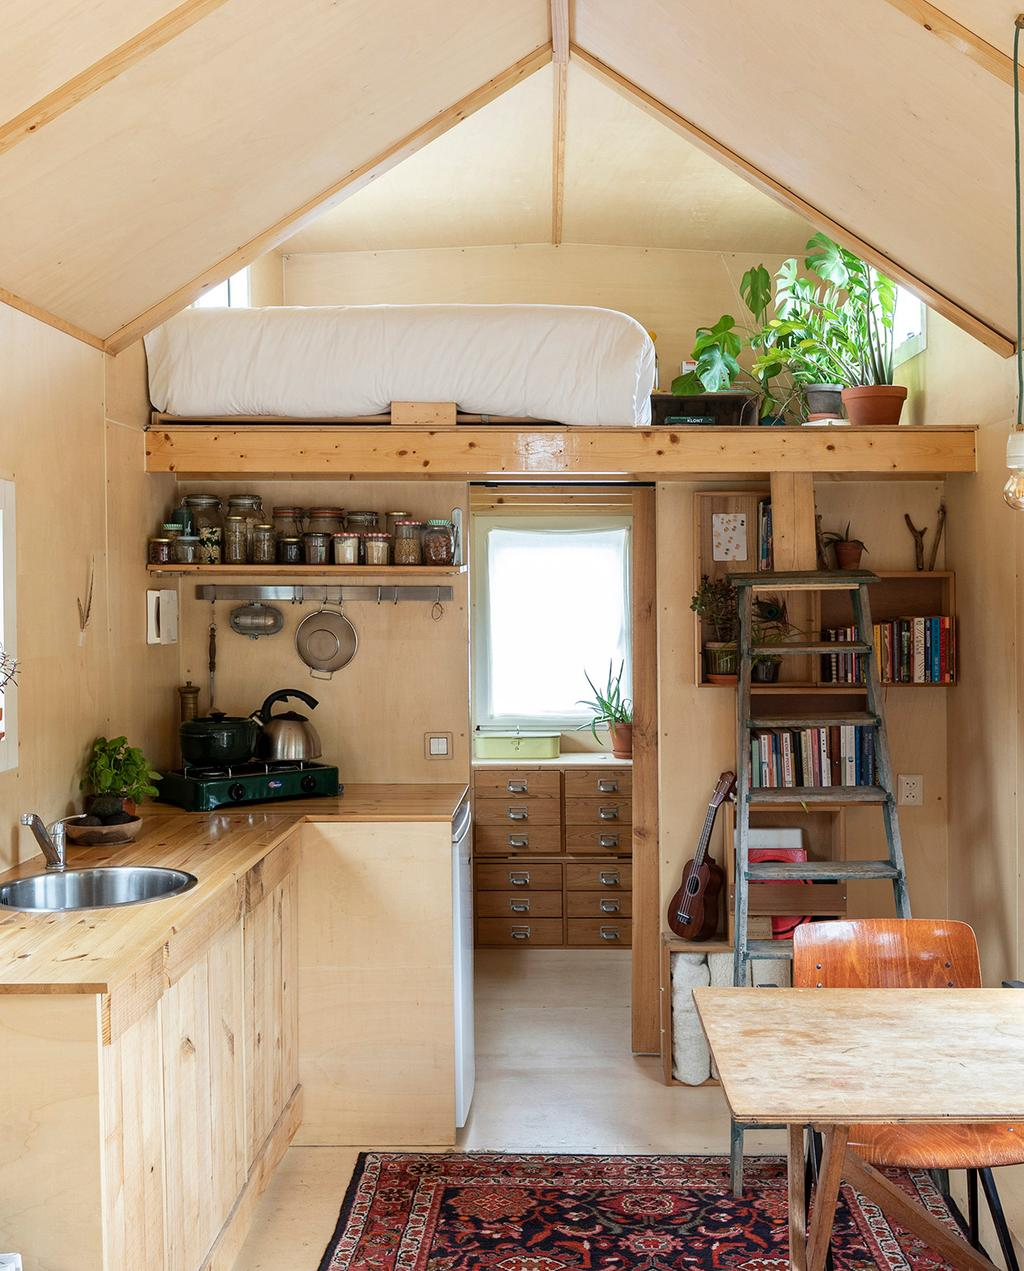 vtwonen special tiny houses | vide met trap in tiny house